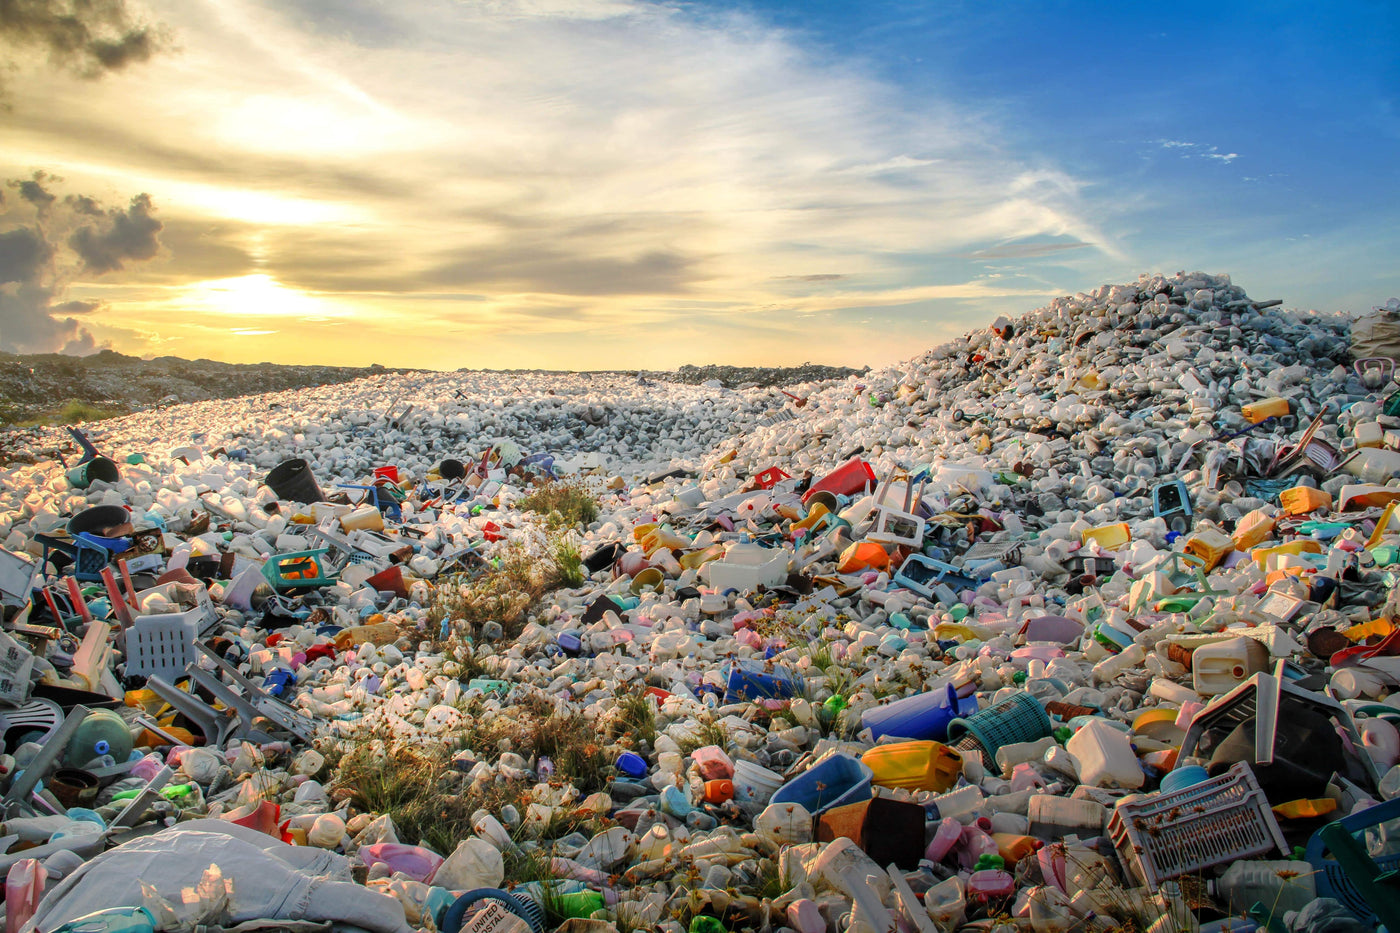 Household plastic waste has increased over lockdown - EcoVibe